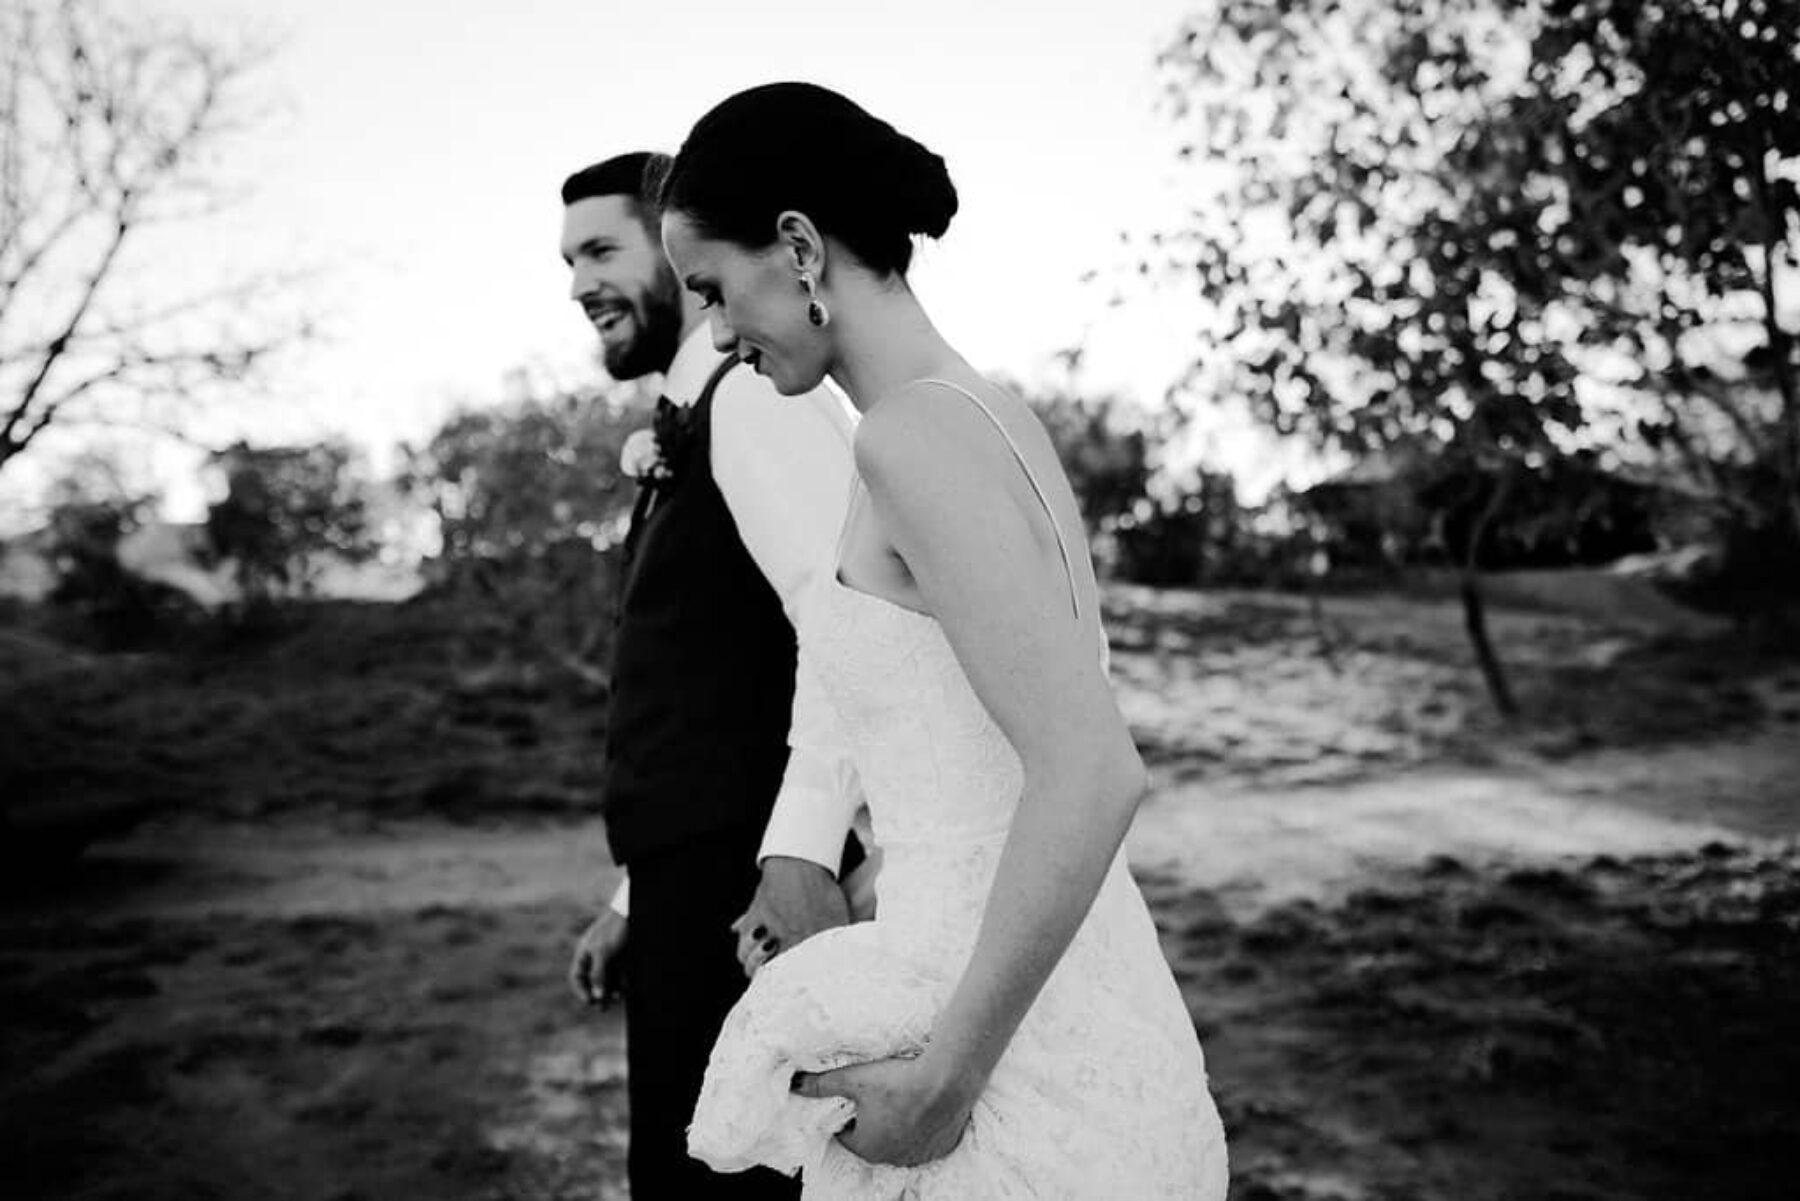 vintage Australiana wedding in Broome WA - Folklore Photography